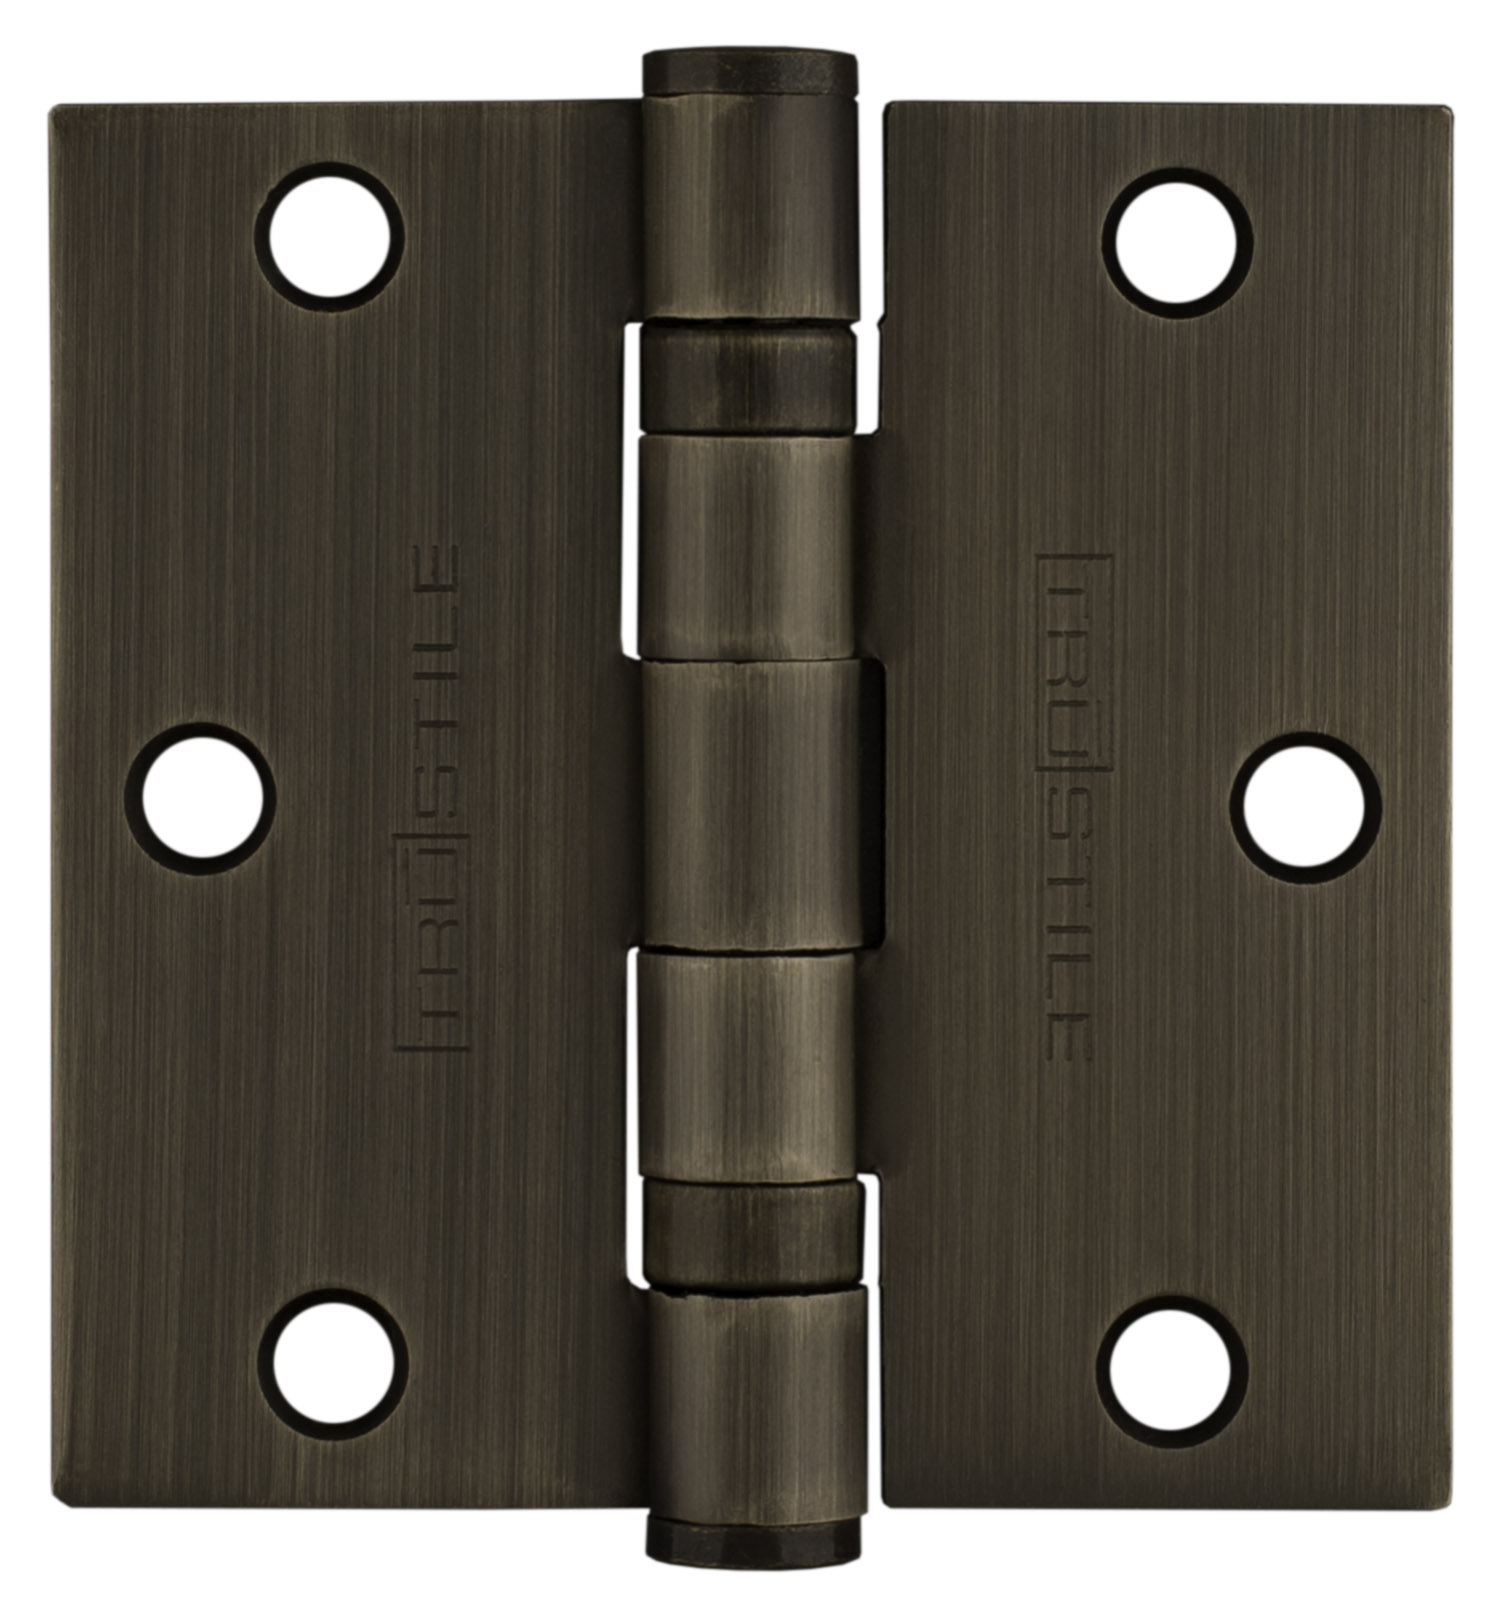 pivoting en interior hinges productinformation door modern made doors glass axis measure innovative with for offset to